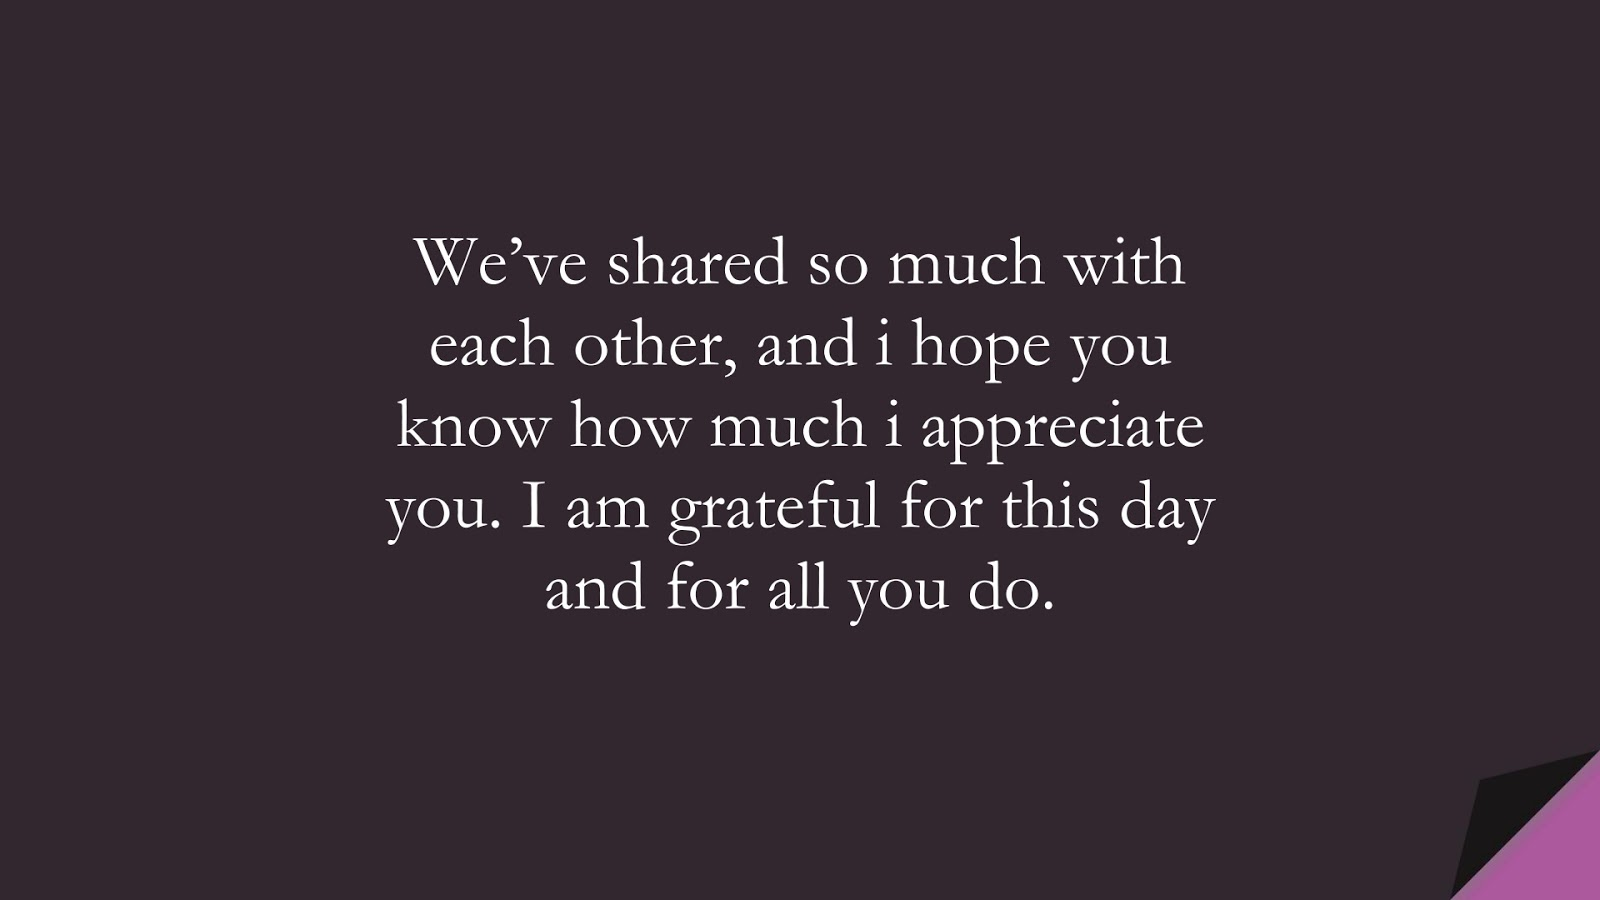 We've shared so much with each other, and i hope you know how much i appreciate you. I am grateful for this day and for all you do.FALSE